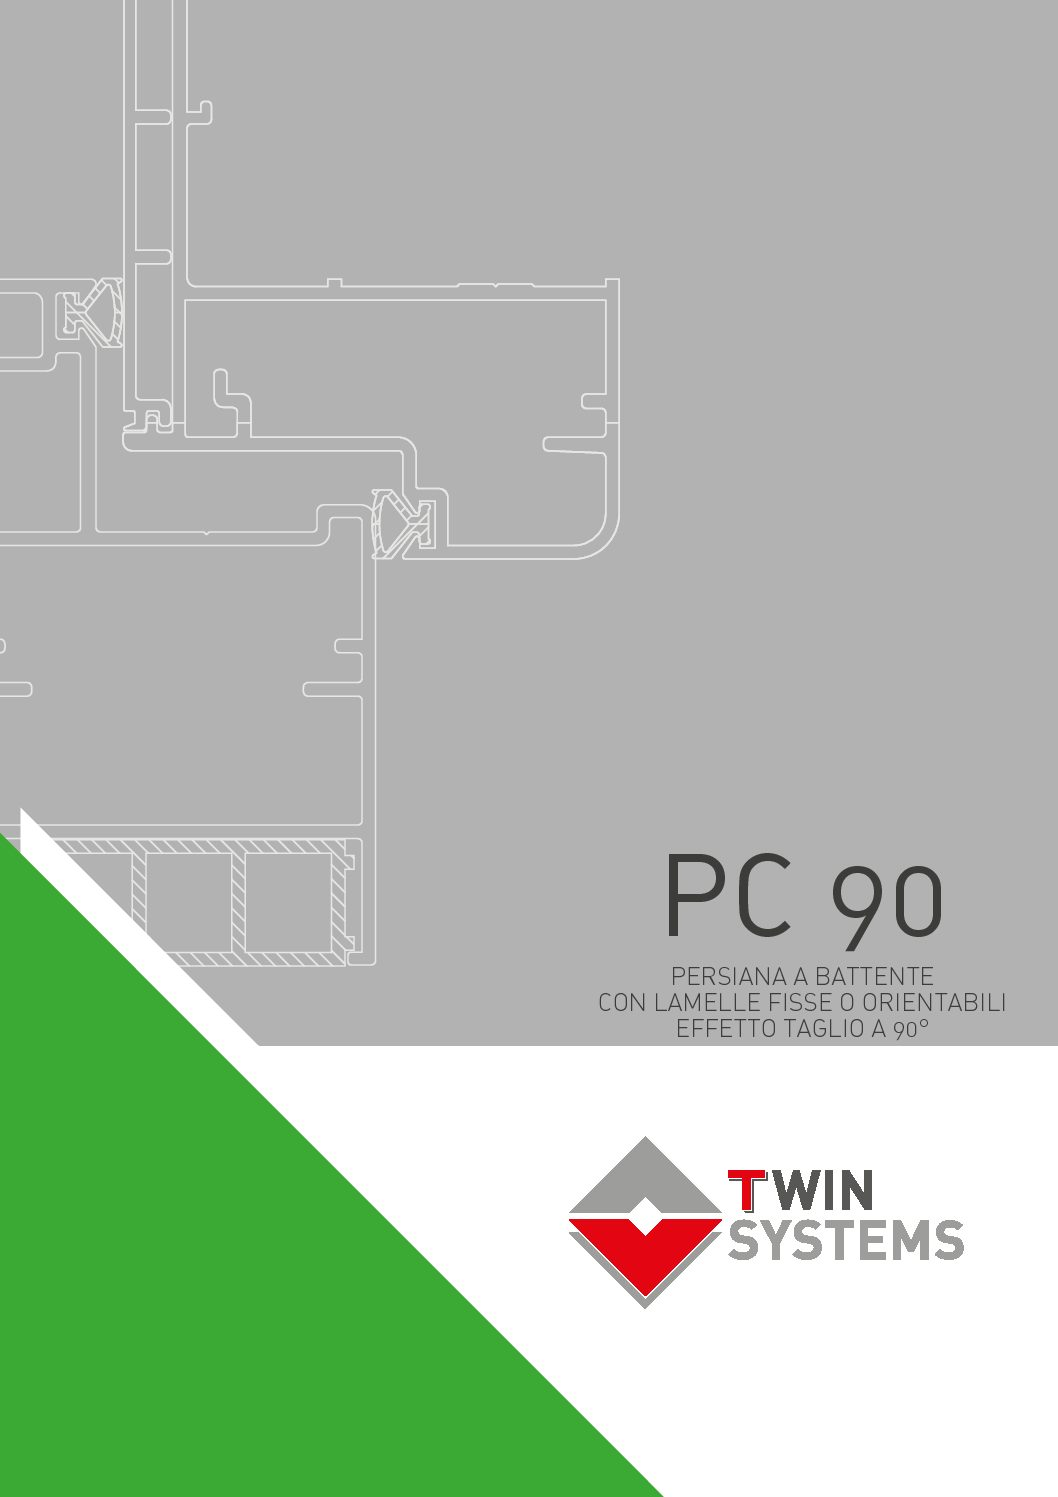 Twinsystems PC-90